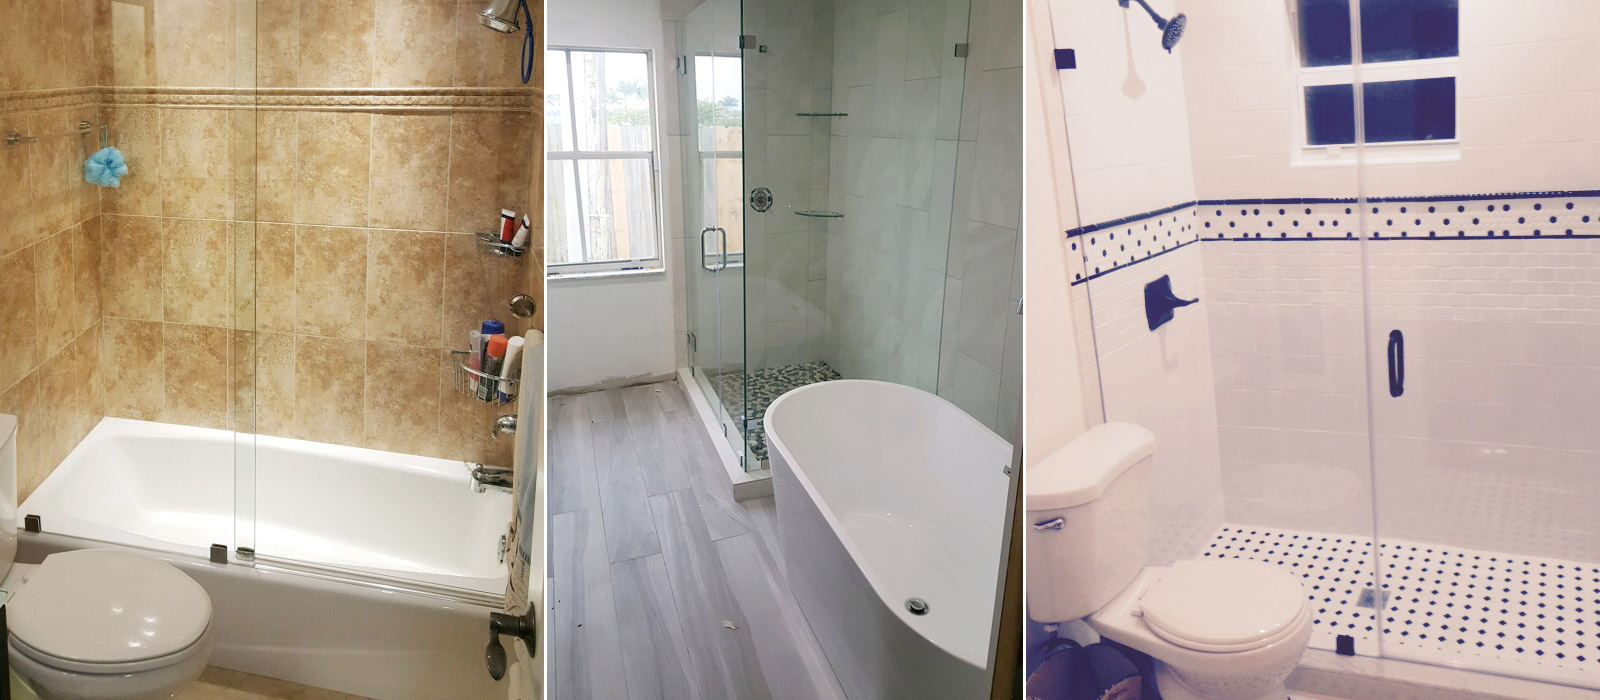 Sales, Installation and Repair of Shower Doors